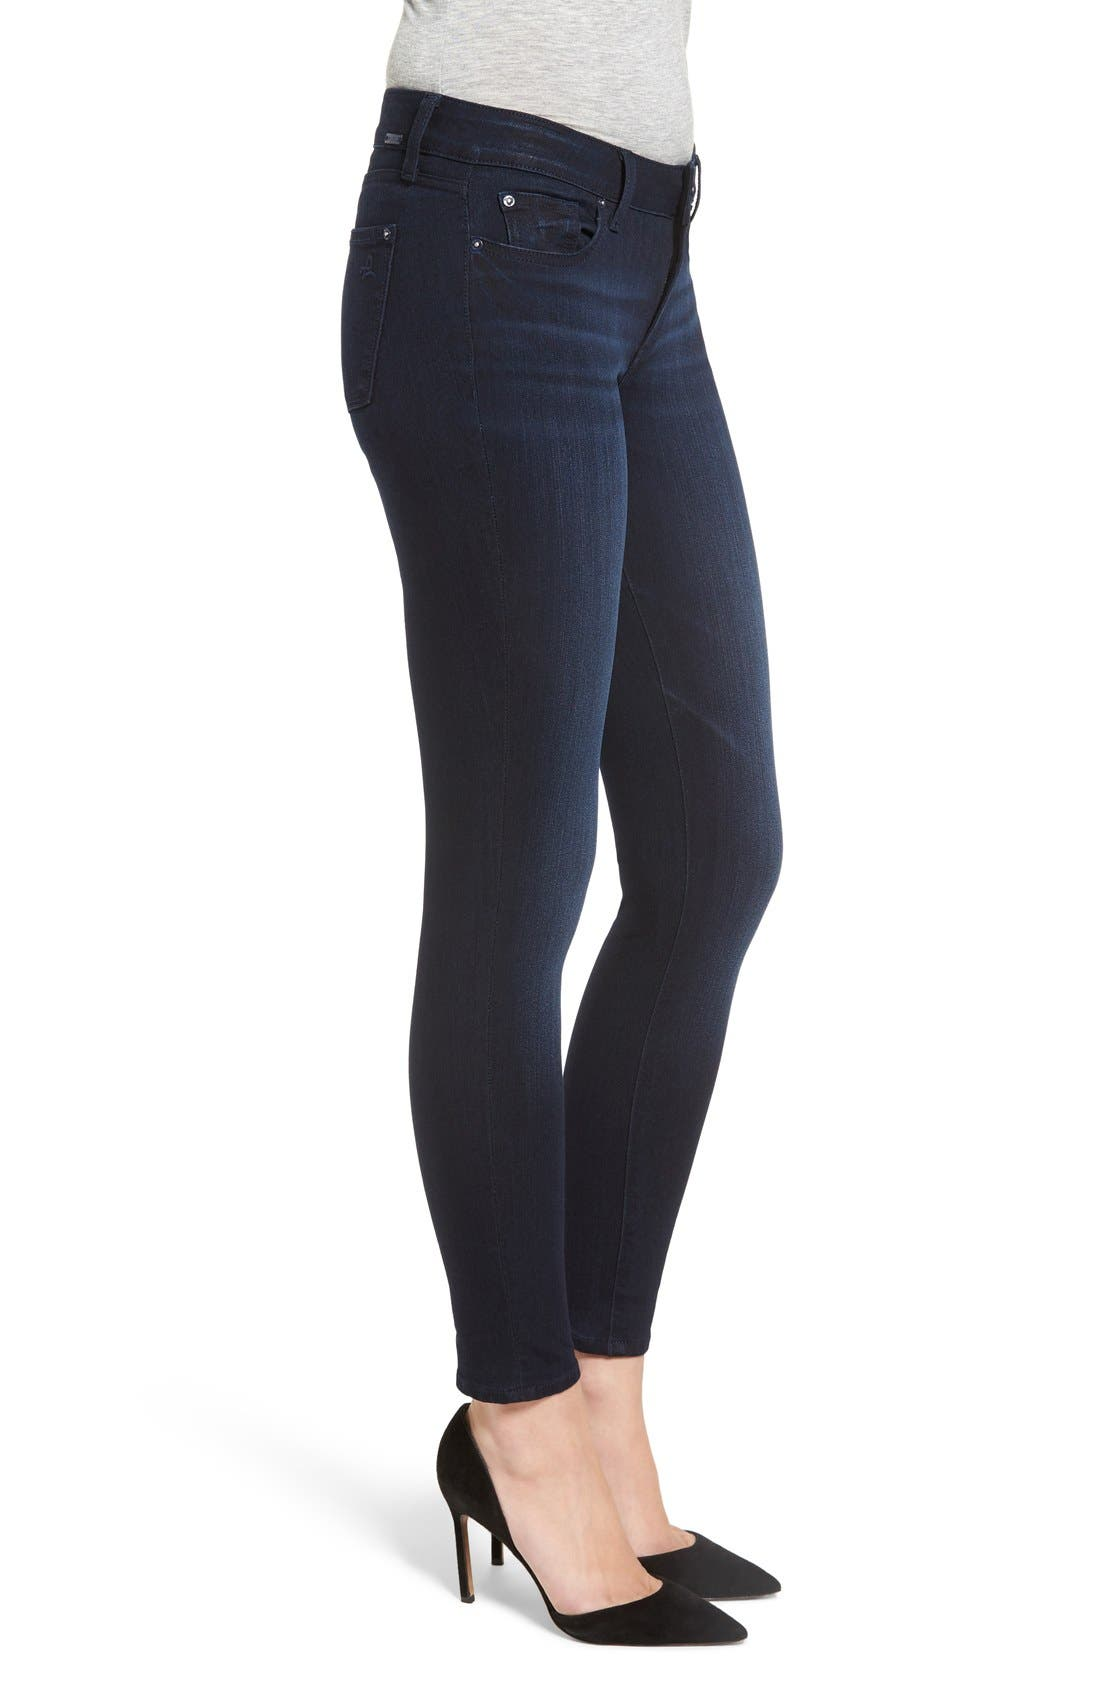 'Emma' Power Legging Jeans,                             Alternate thumbnail 3, color,                             Token